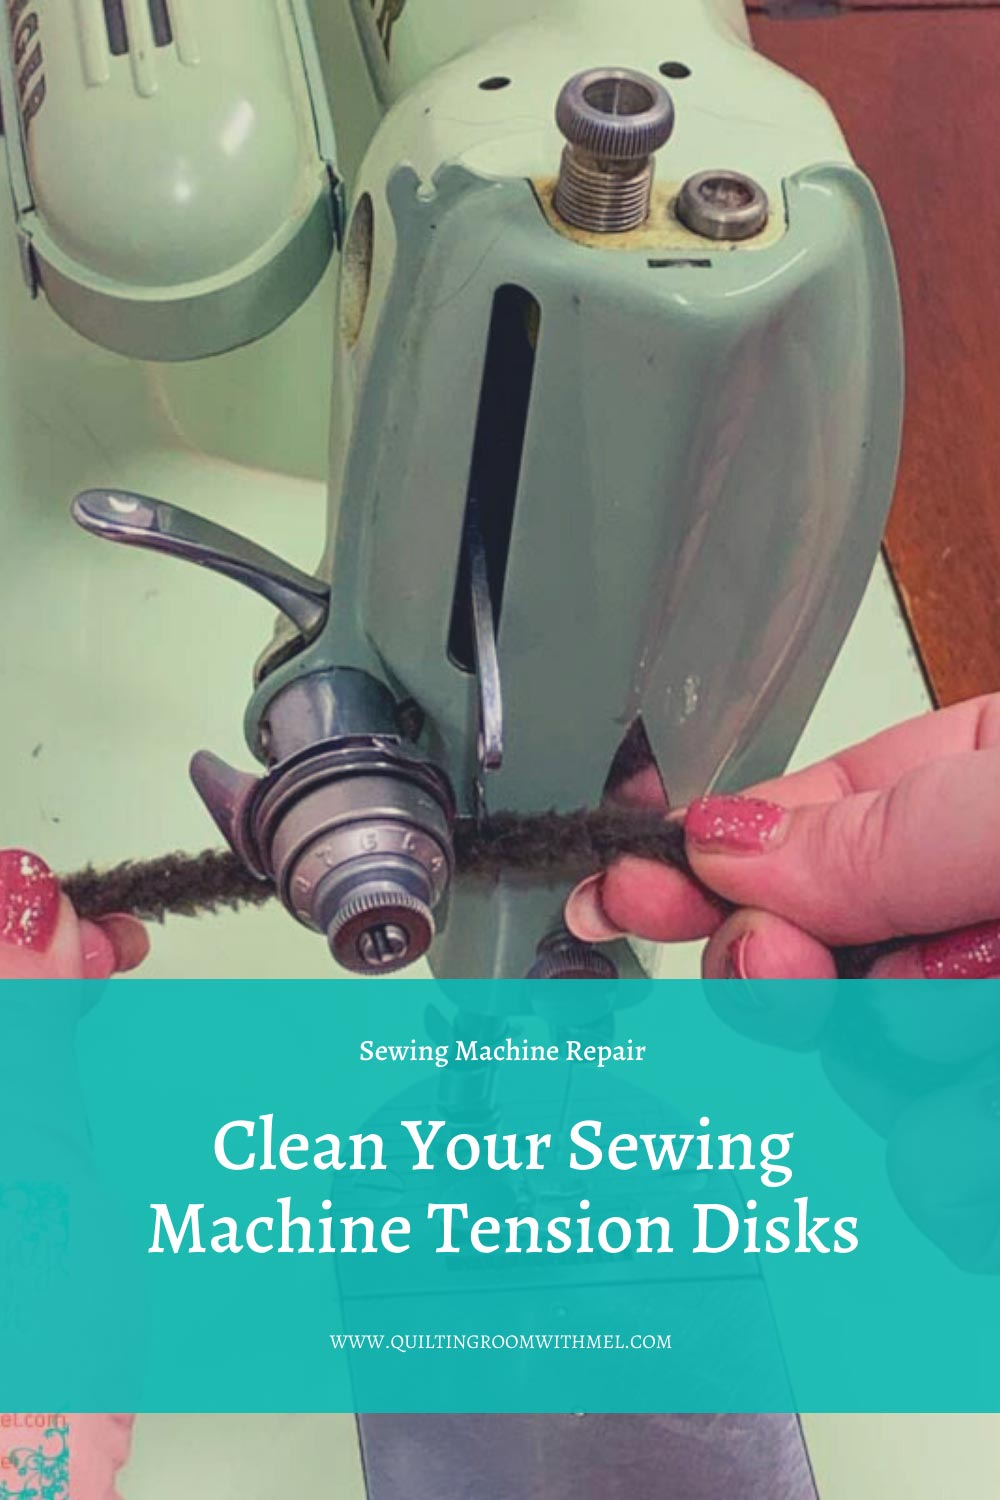 Learn how to clean the tension disks on your sewing machine without taking them apart.